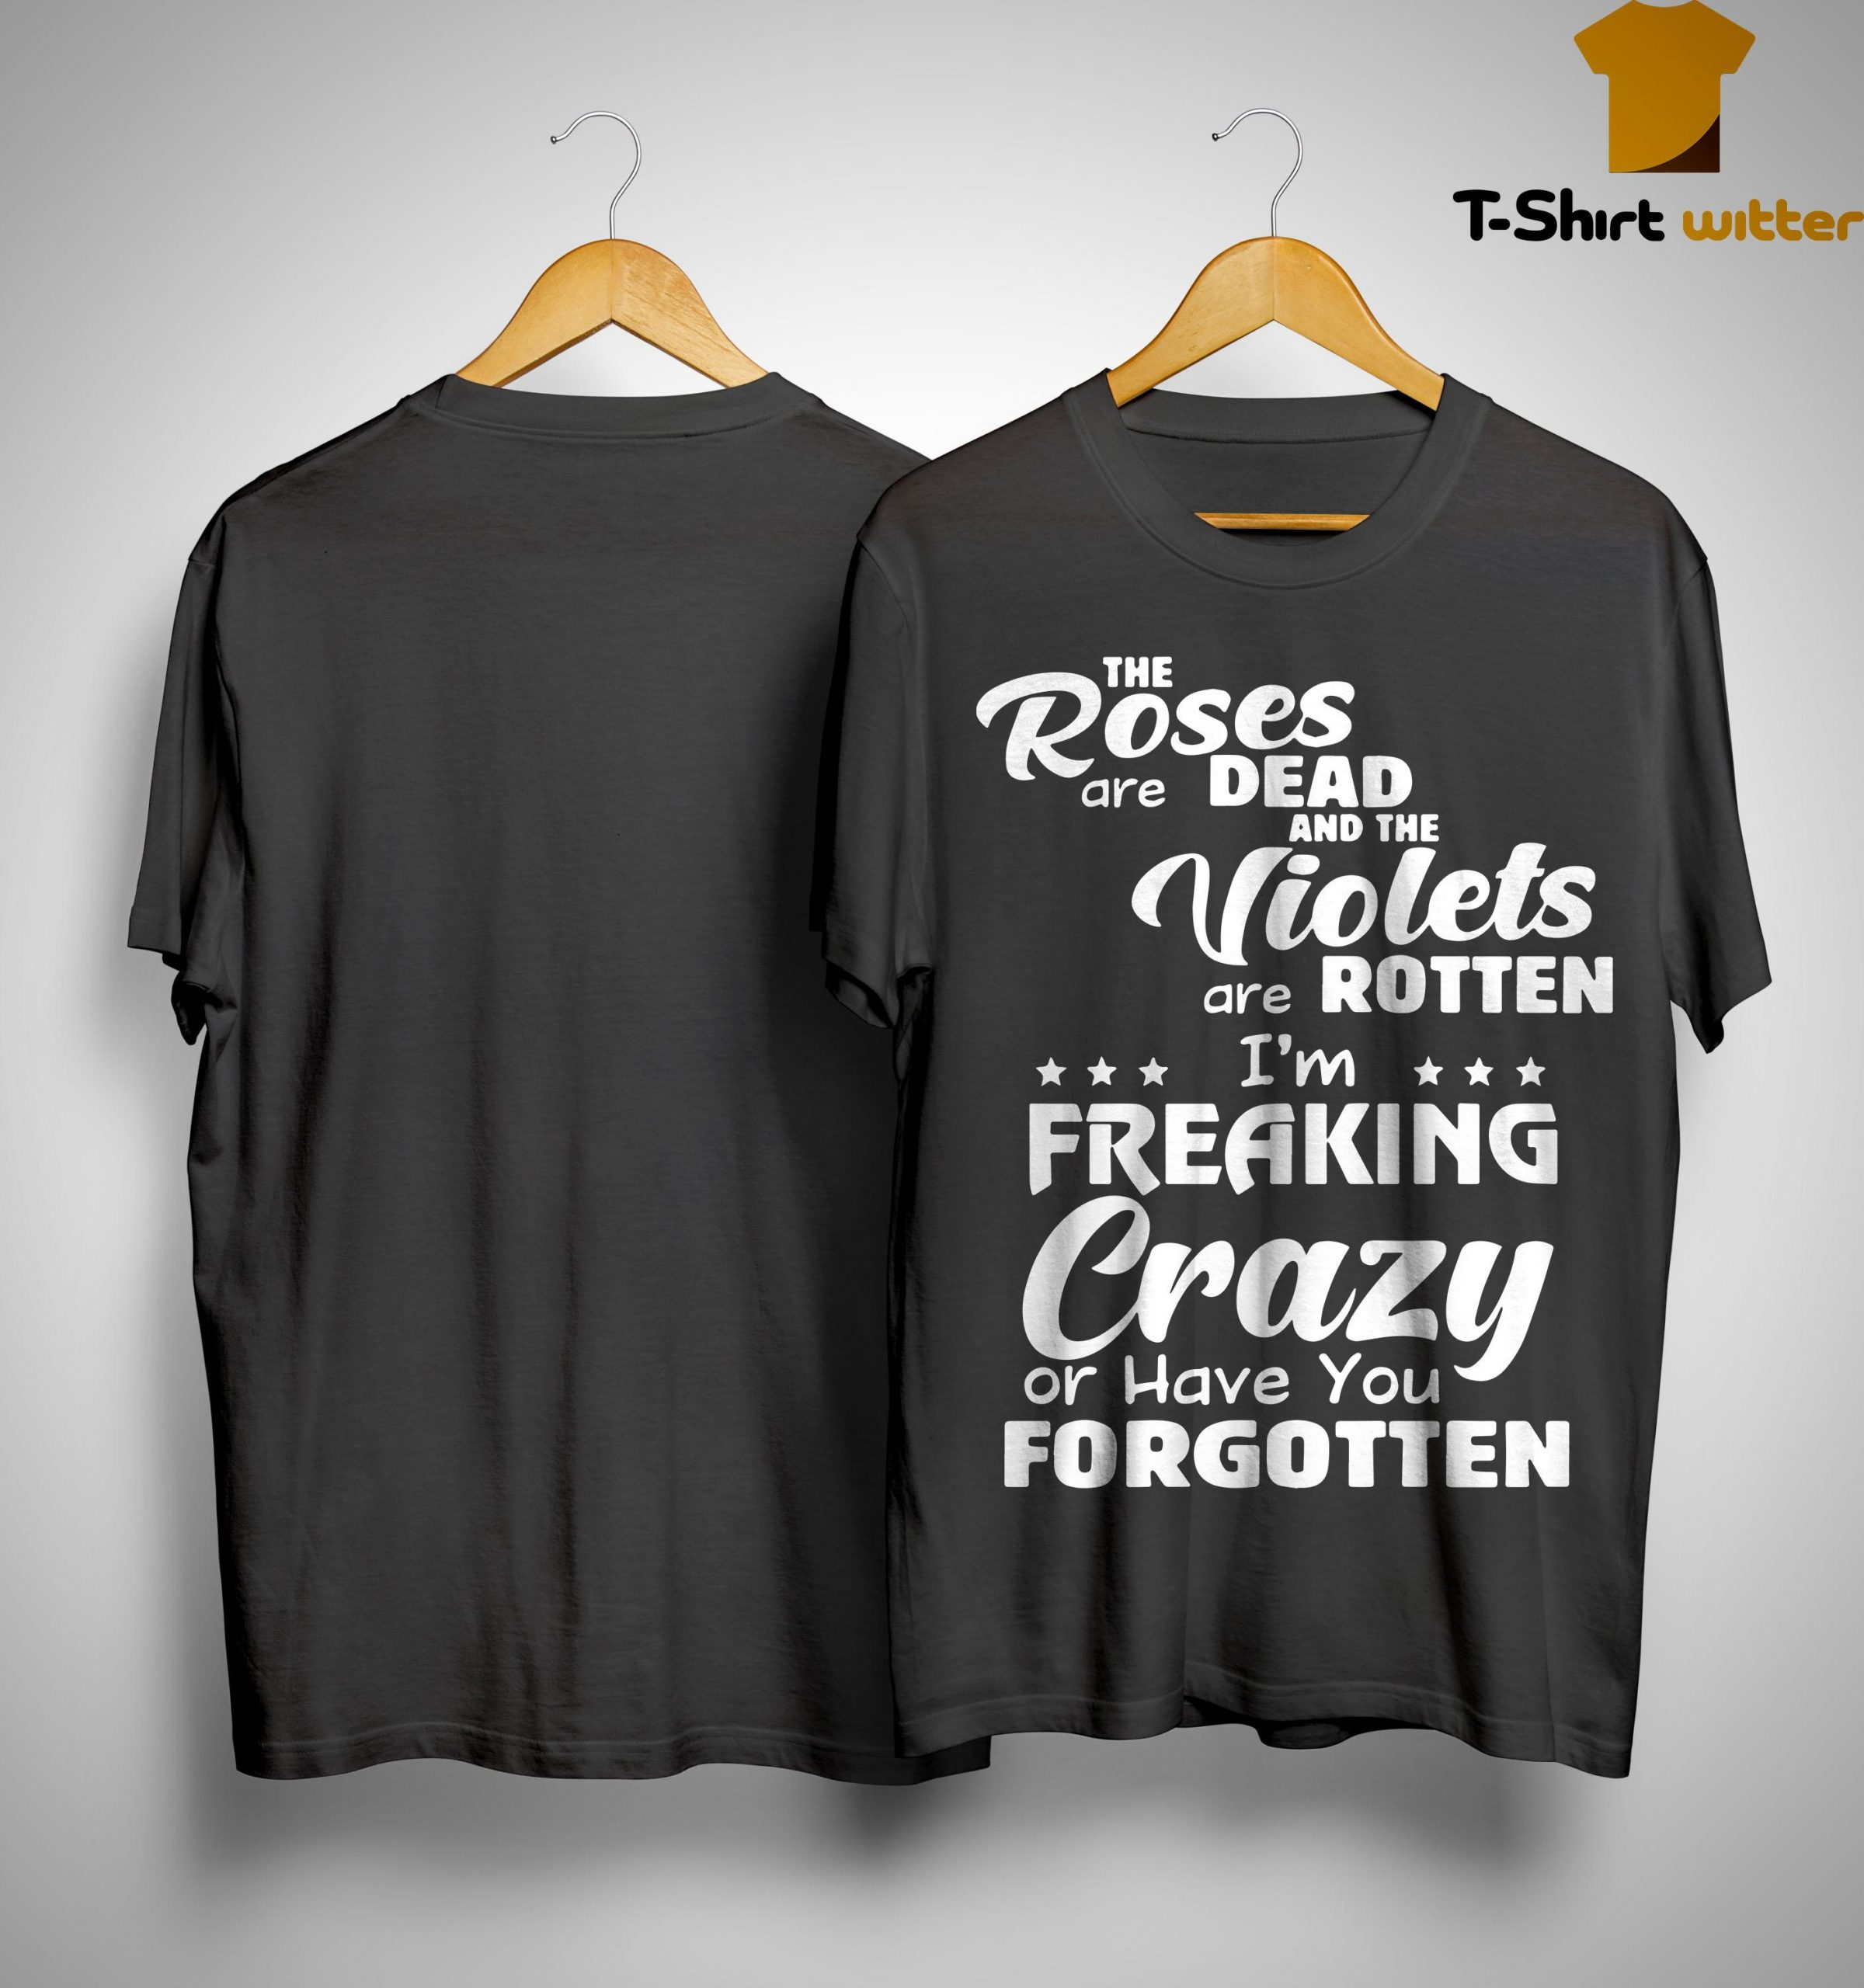 The Roses Are Dead And The Violets Are Rotten I'm Freaking Crazy And Have You Forgotten Shirt